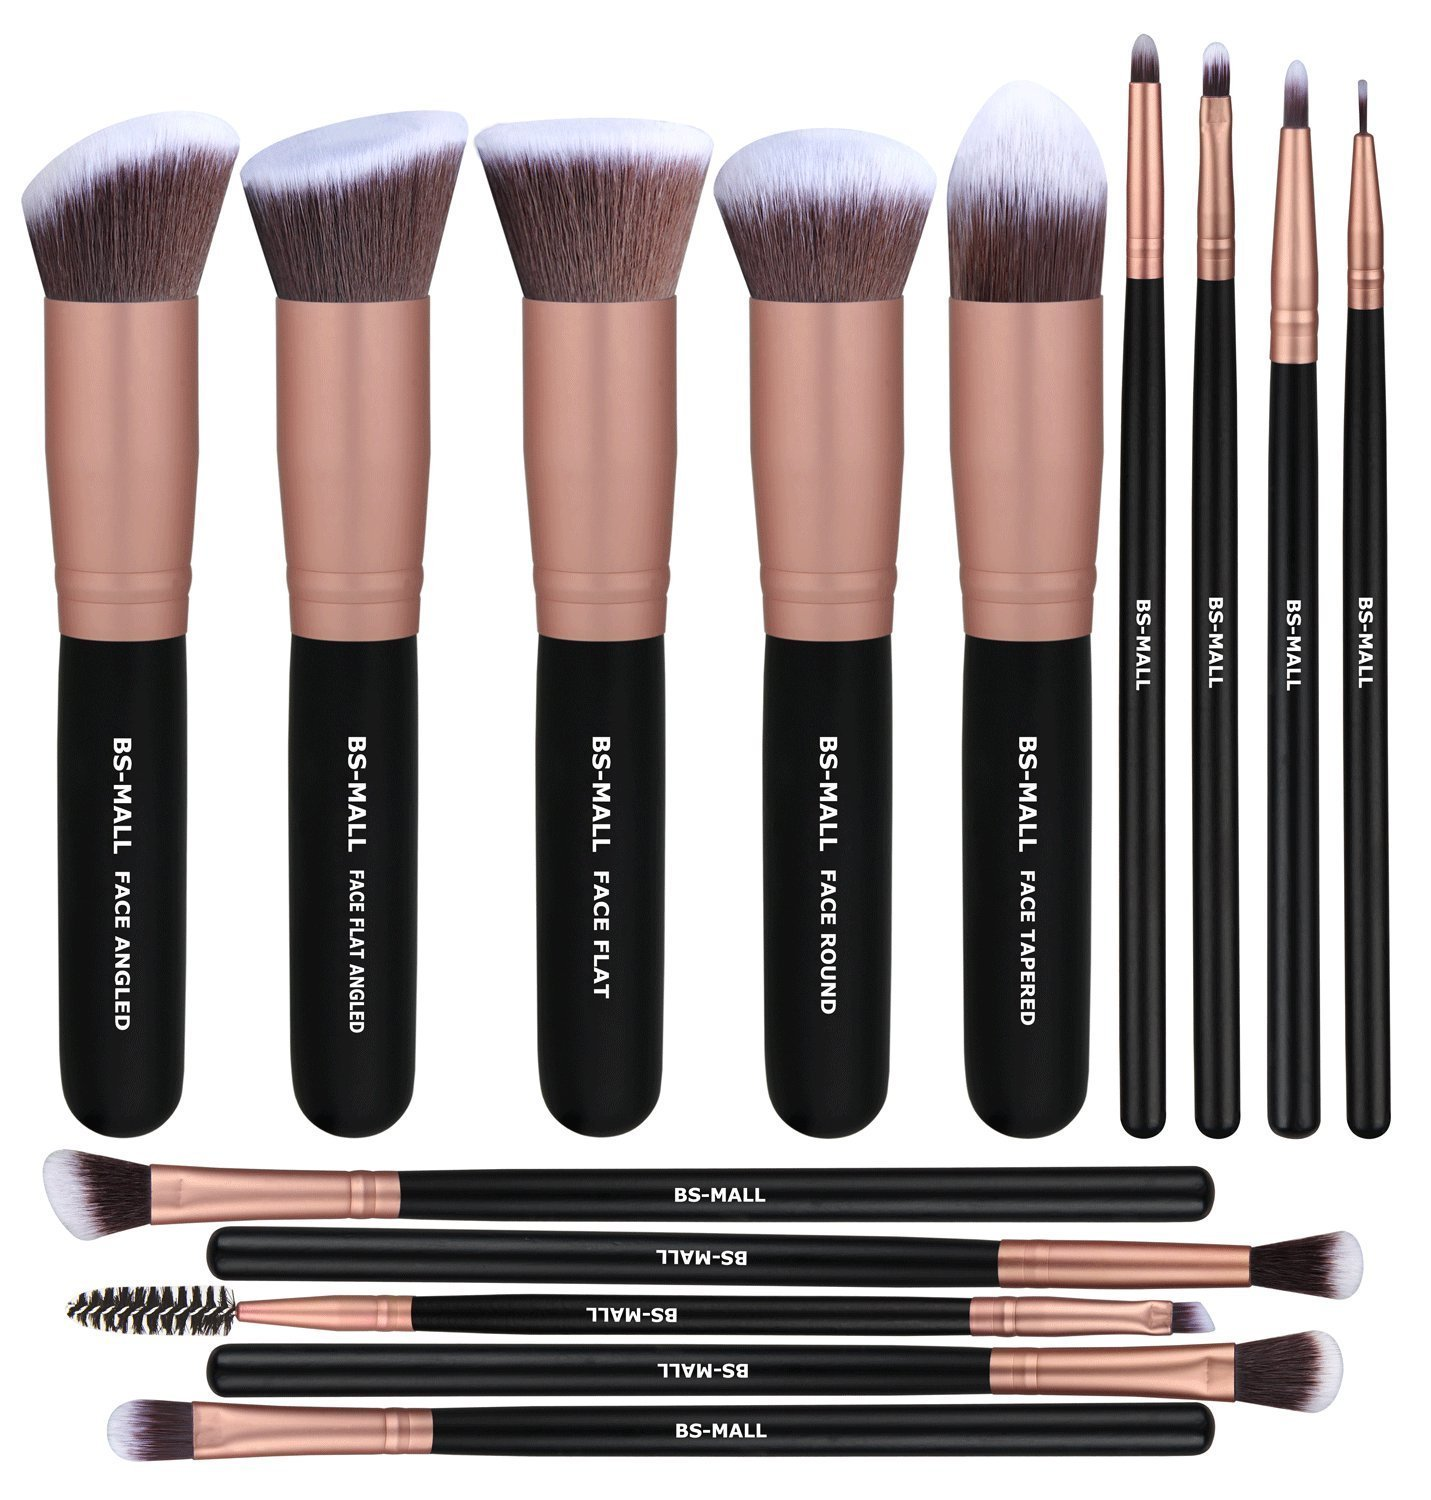 BS-MALL Makeup Brushes Premium Synthetic Foundation Powder Concealers Eye Shadows Makeup 14 Pcs Brush